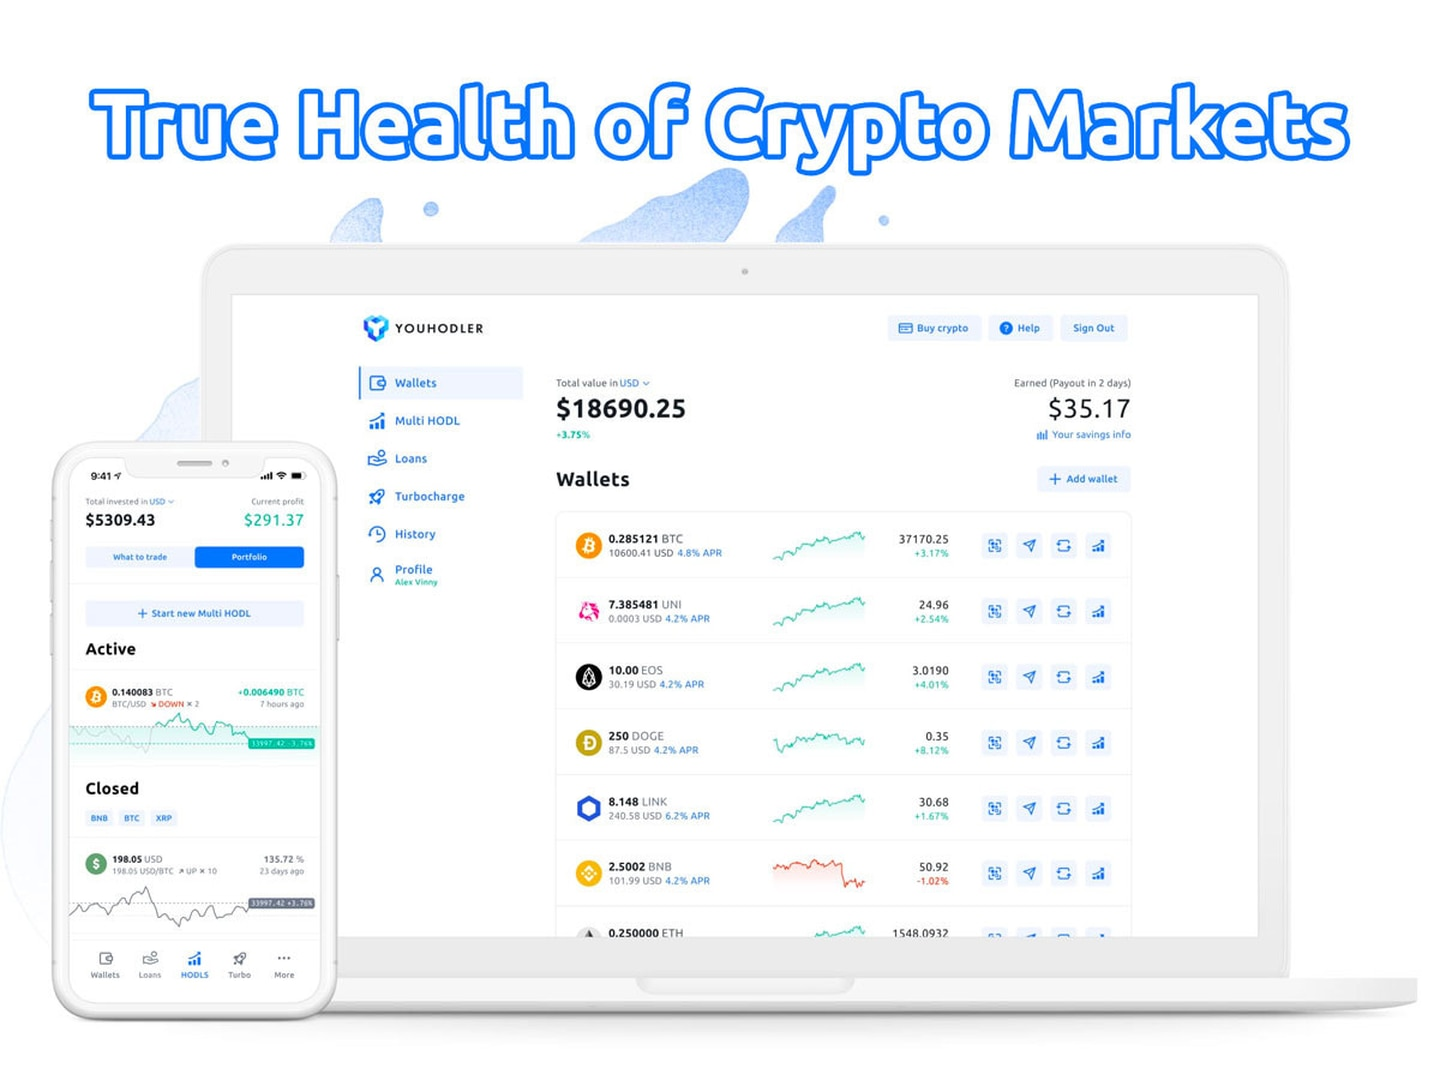 New YouHodler Data Shows True Health of Crypto Markets